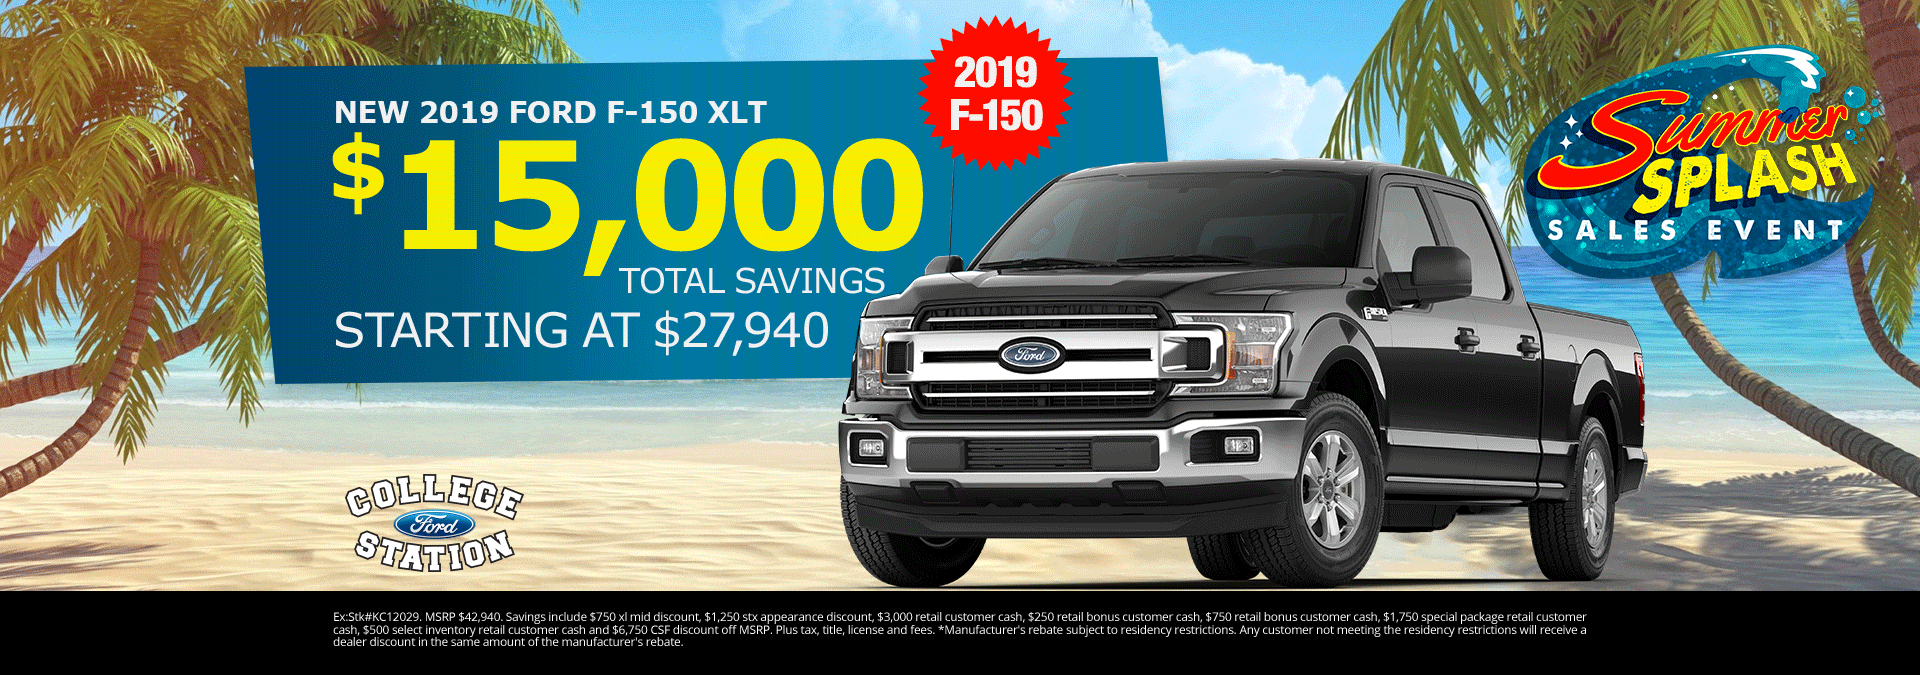 College Station Ford >> All New Ford Specials College Station Ford Deals On New